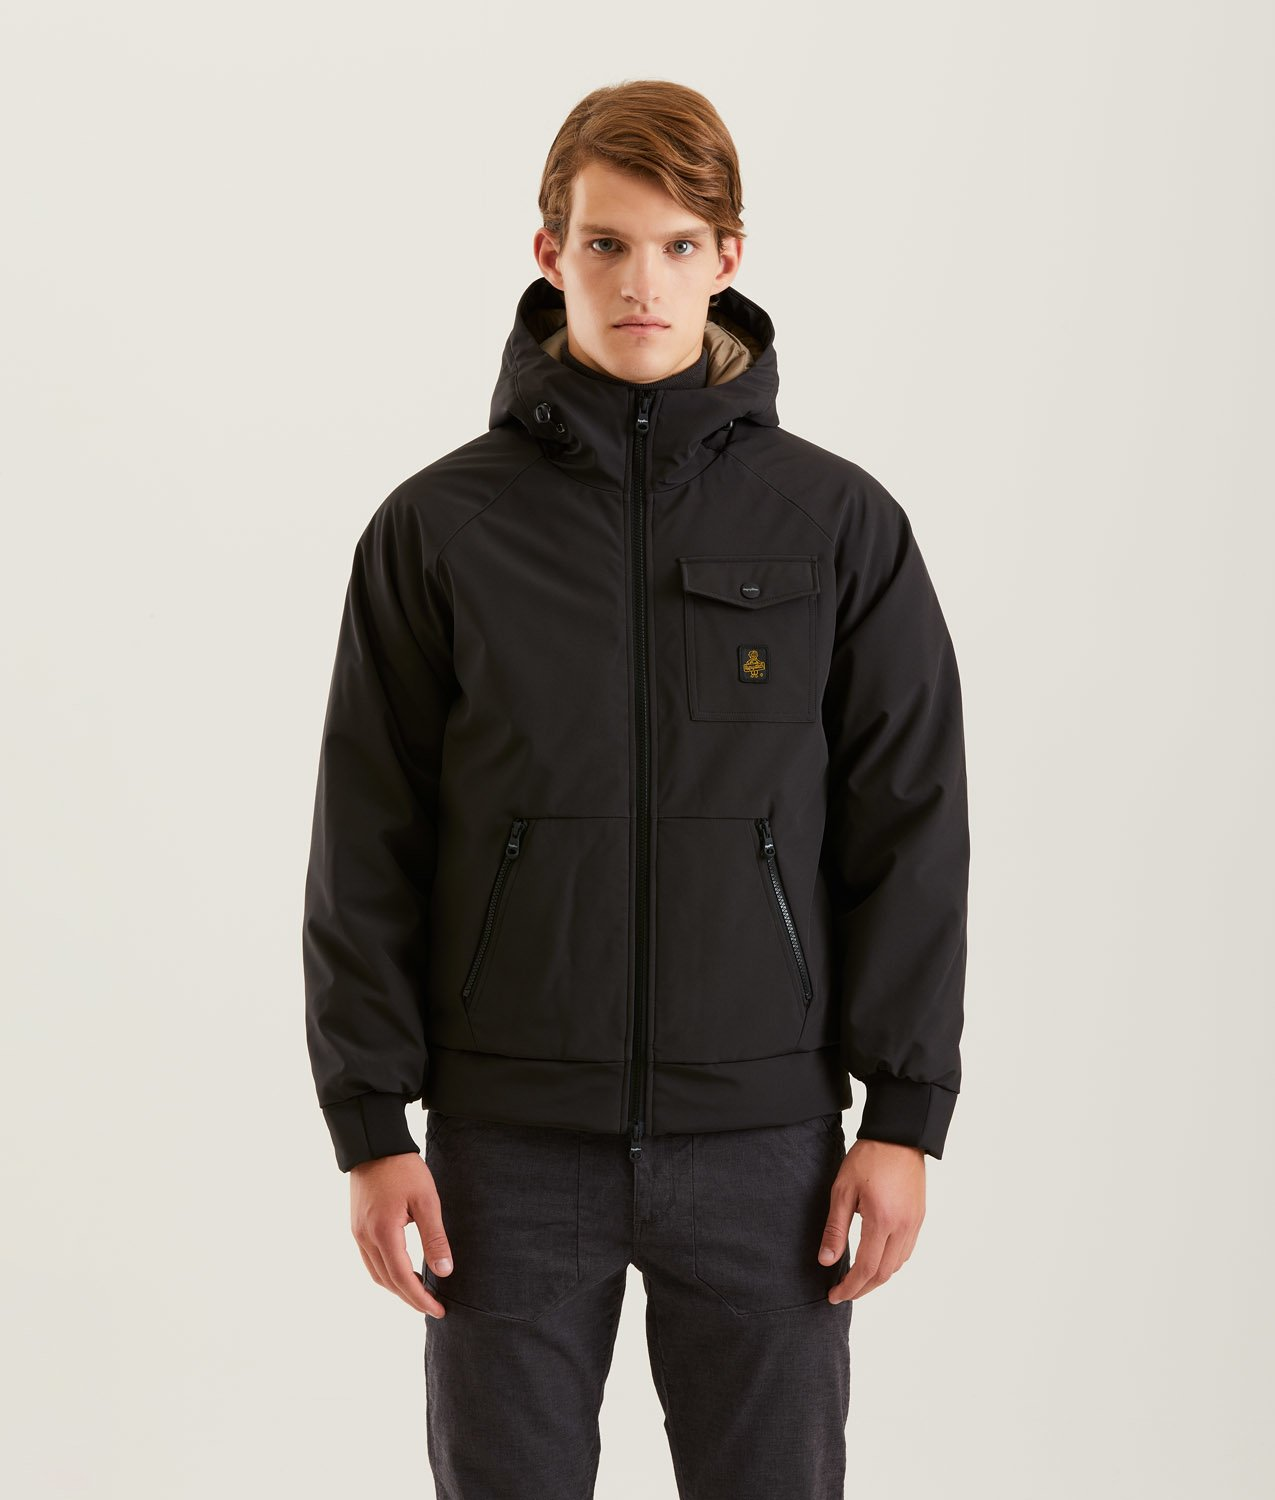 WINTER SPEED JACKET